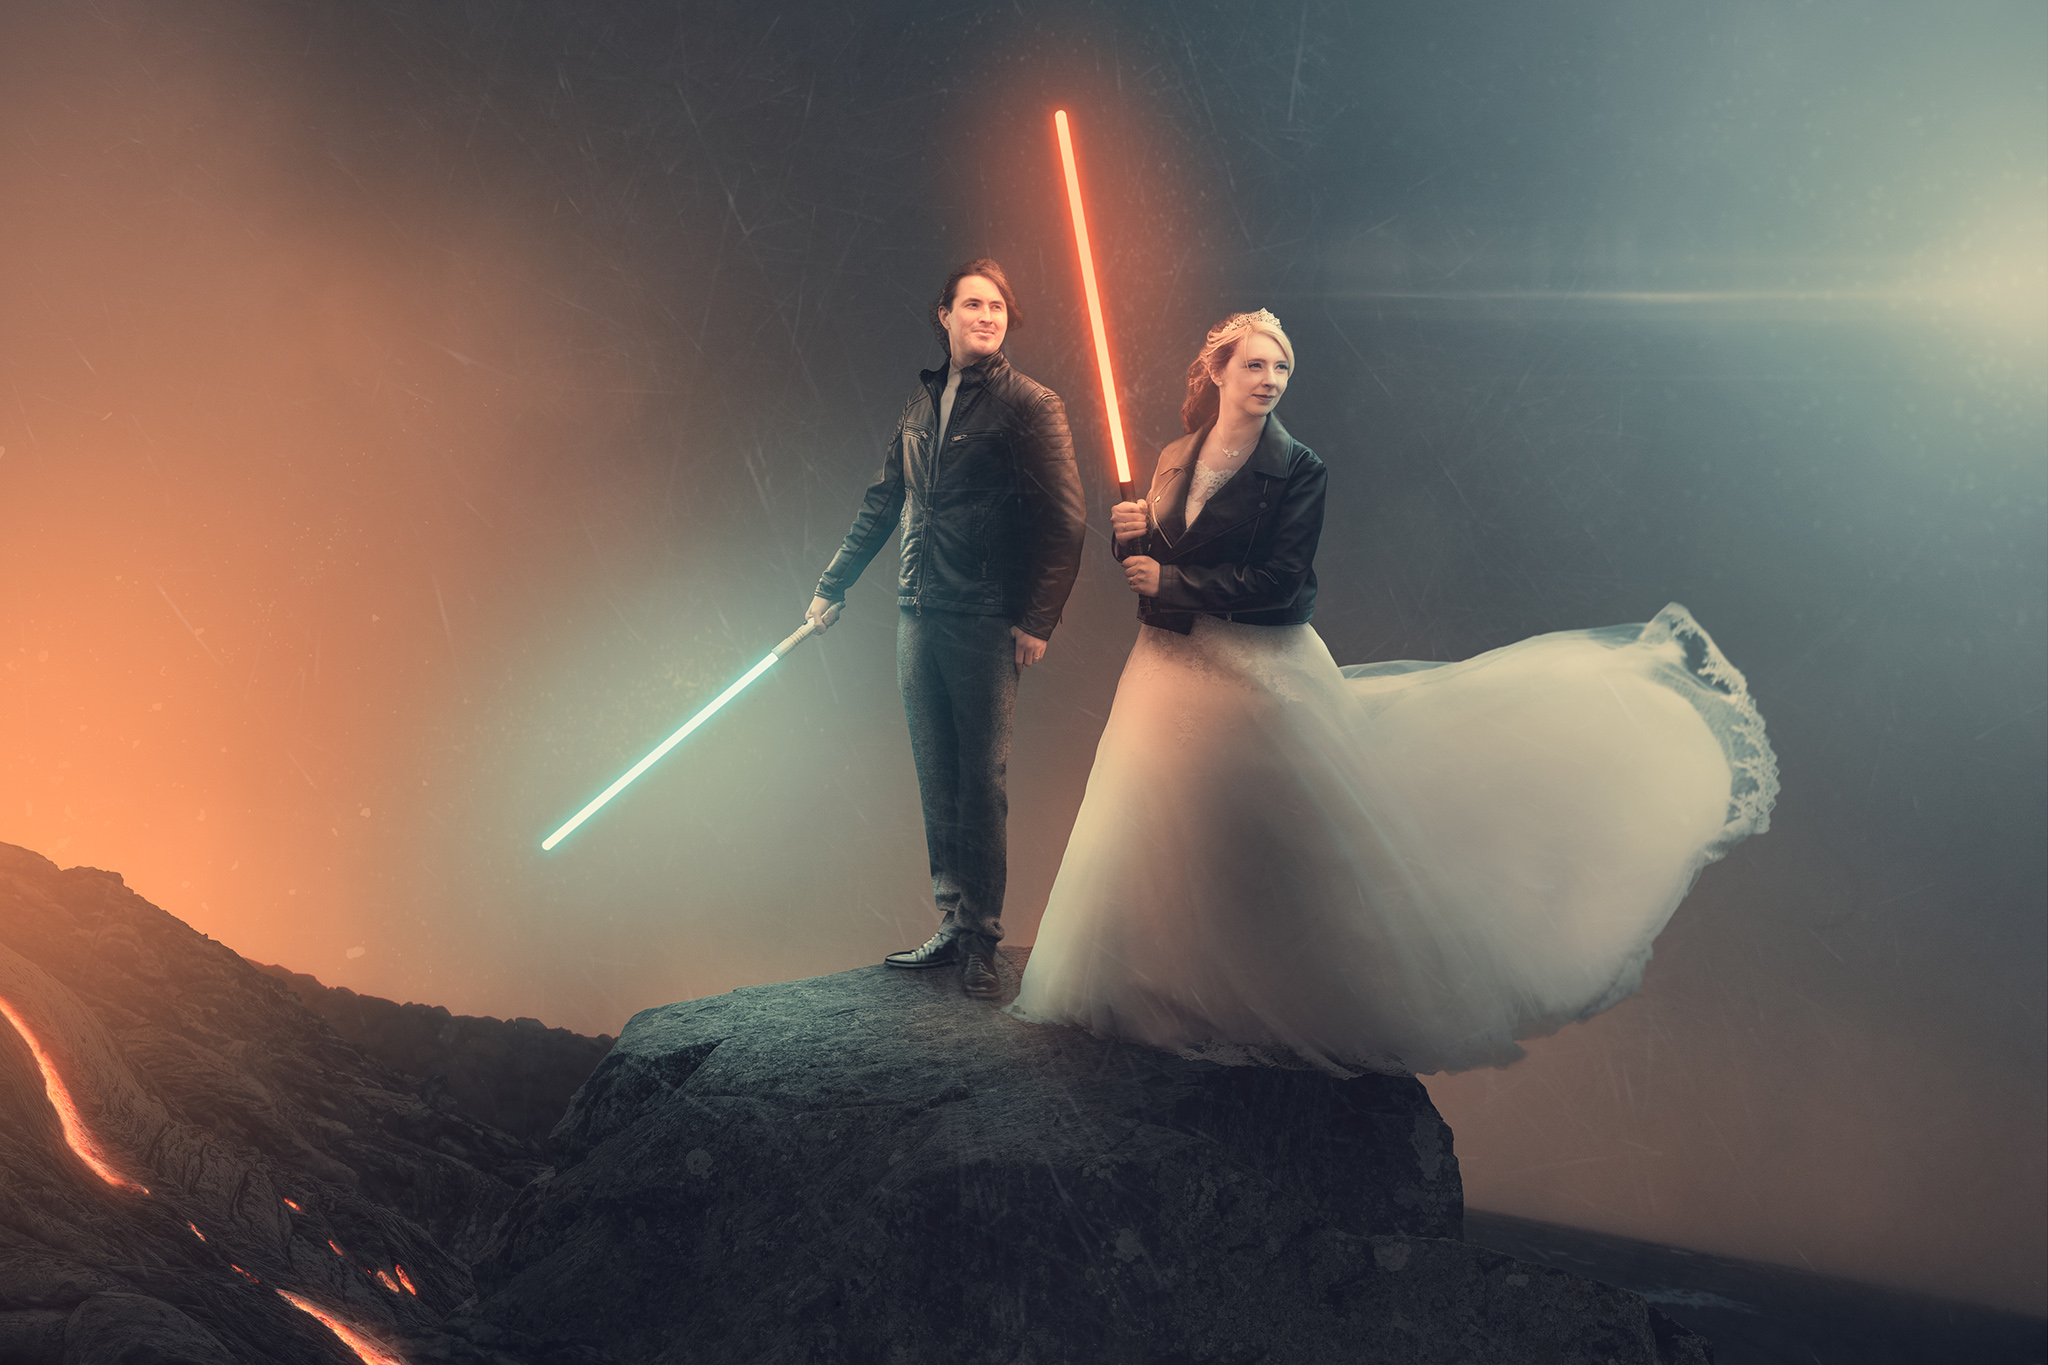 Lightsaber wedding photo - bride & groom holding red and blue light sabers on top of a mountain with lava - sci fi wedding photo - creative wedding ideas - star wars wedding photo